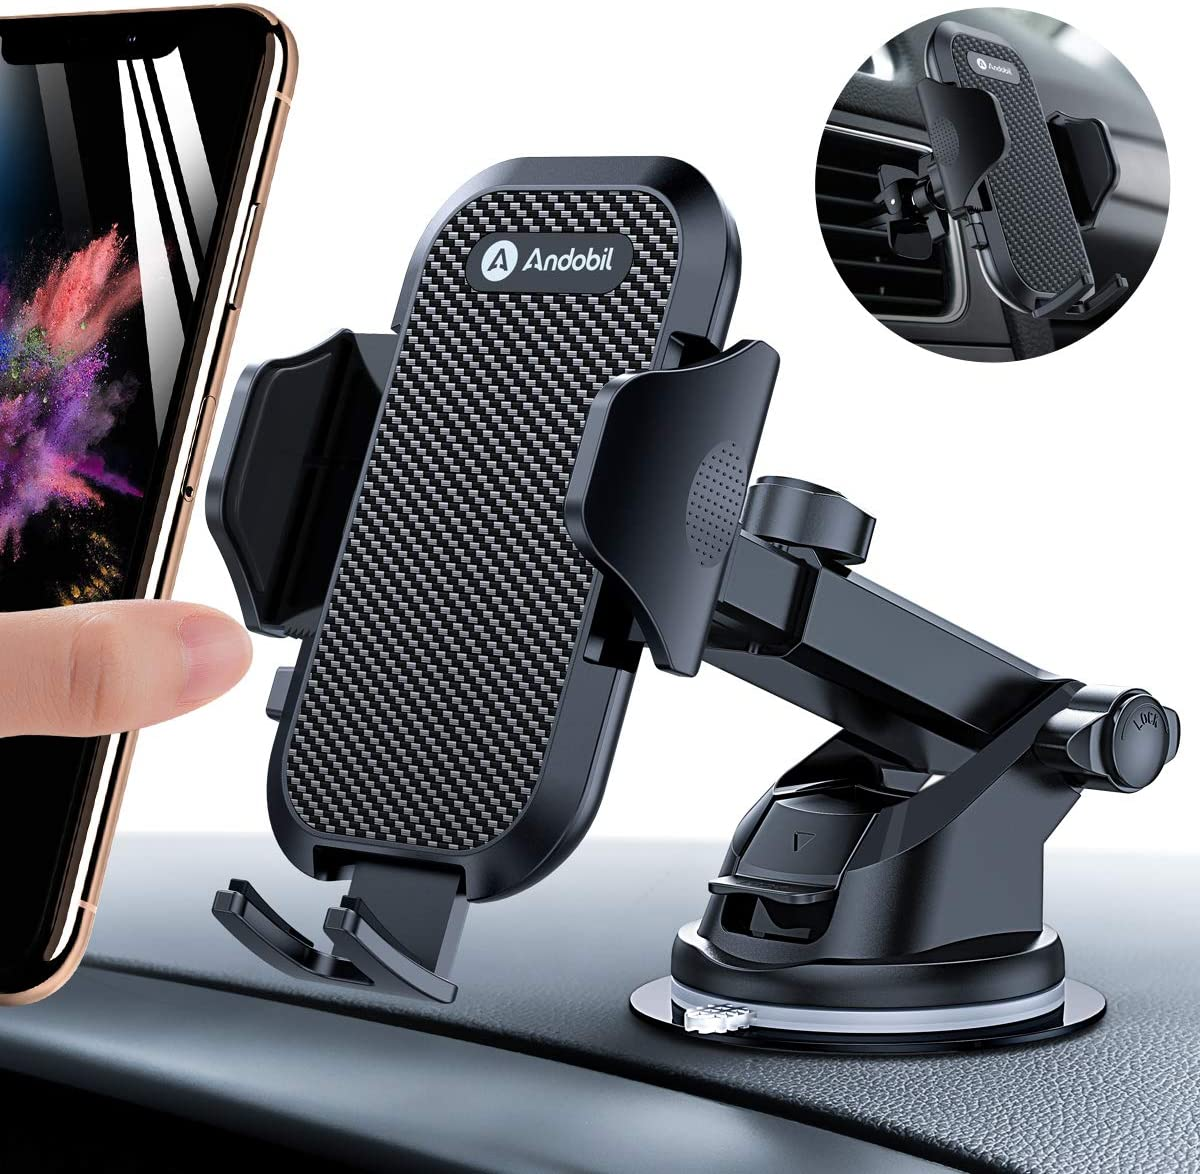 Andobil Car Phone Mount Easy Clamp, Ultimate Hands-Free Phone Holder for Car Dashboard Air Vent Windshield, Super Suction Cup, Compatible for iPhone 11/11 Pro/8 Plus/8/X/XR/XS/7 Plus Samsung S10/S9/S8 71O2MPqTUjL